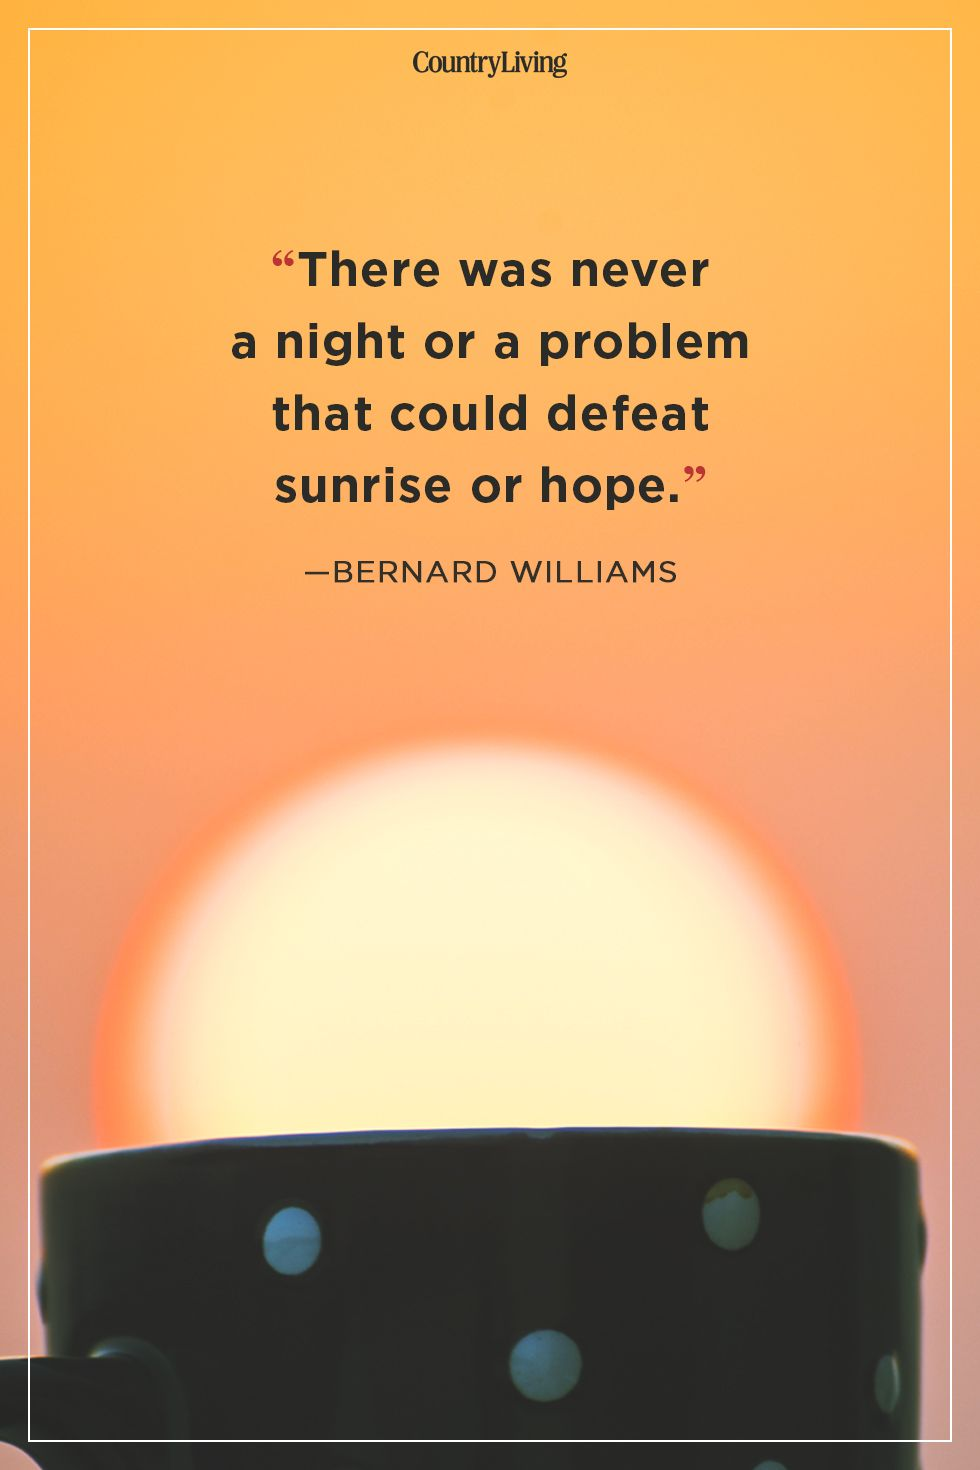 bernard williams good morning quote